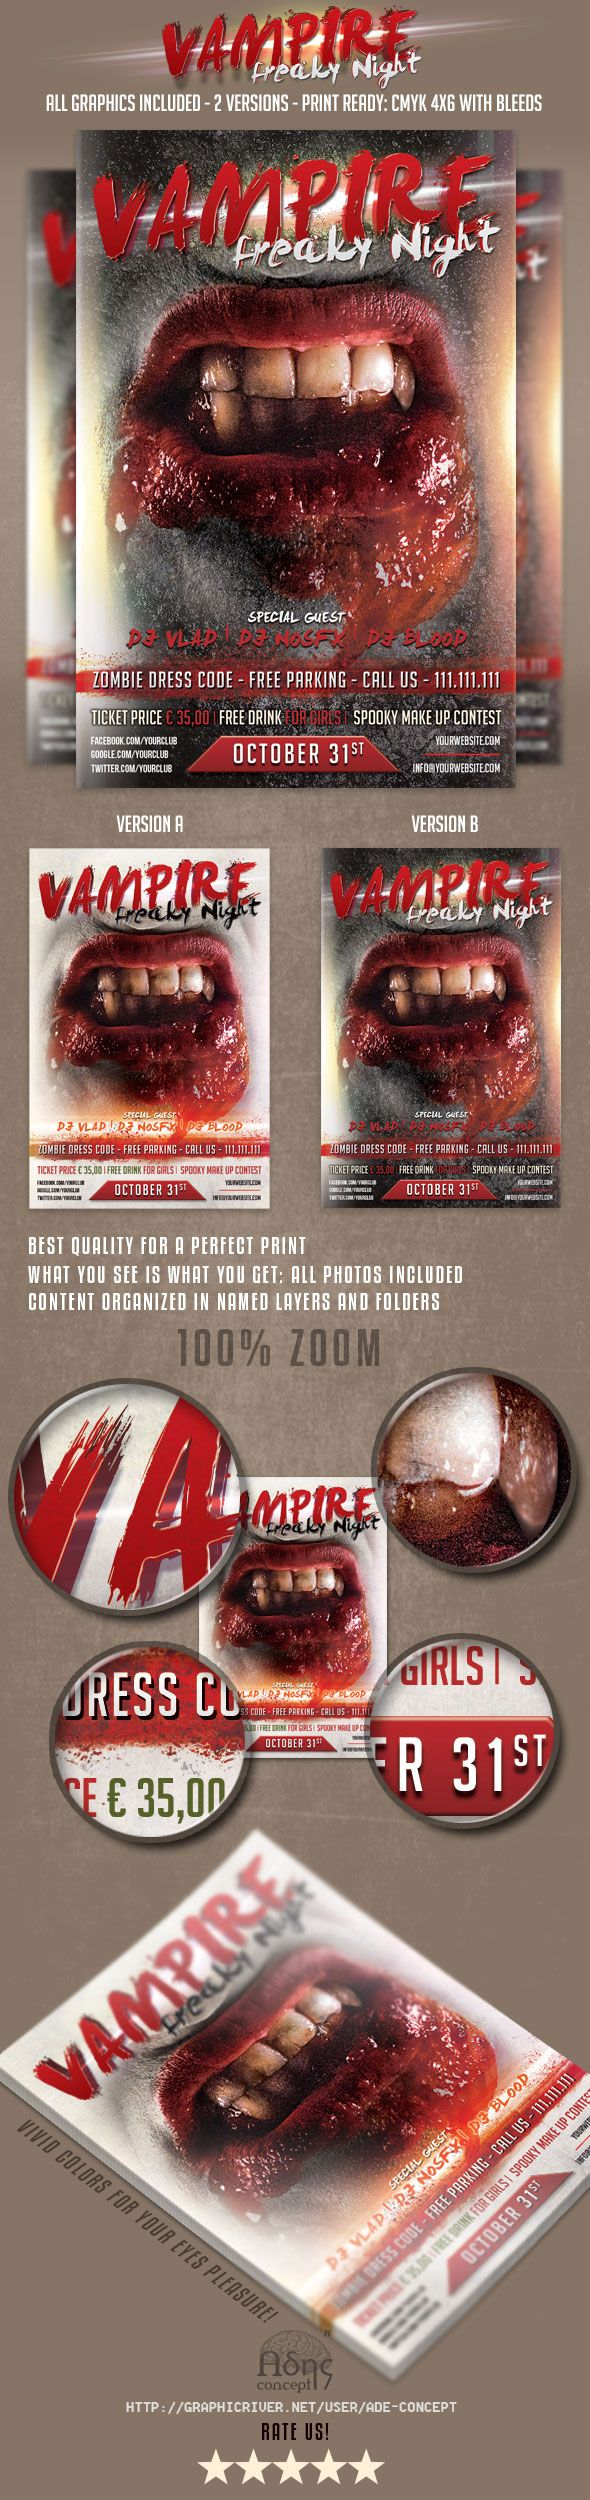 Halloween Flyer Template on GraphicRiver  #halloween #flyer #template #graphicriver  http://graphicriver.net/item/trick-or-treat-halloween-flyer/9184369?WT.ac=portfolio&WT.z_author=ade-concept&ref=ade-concept